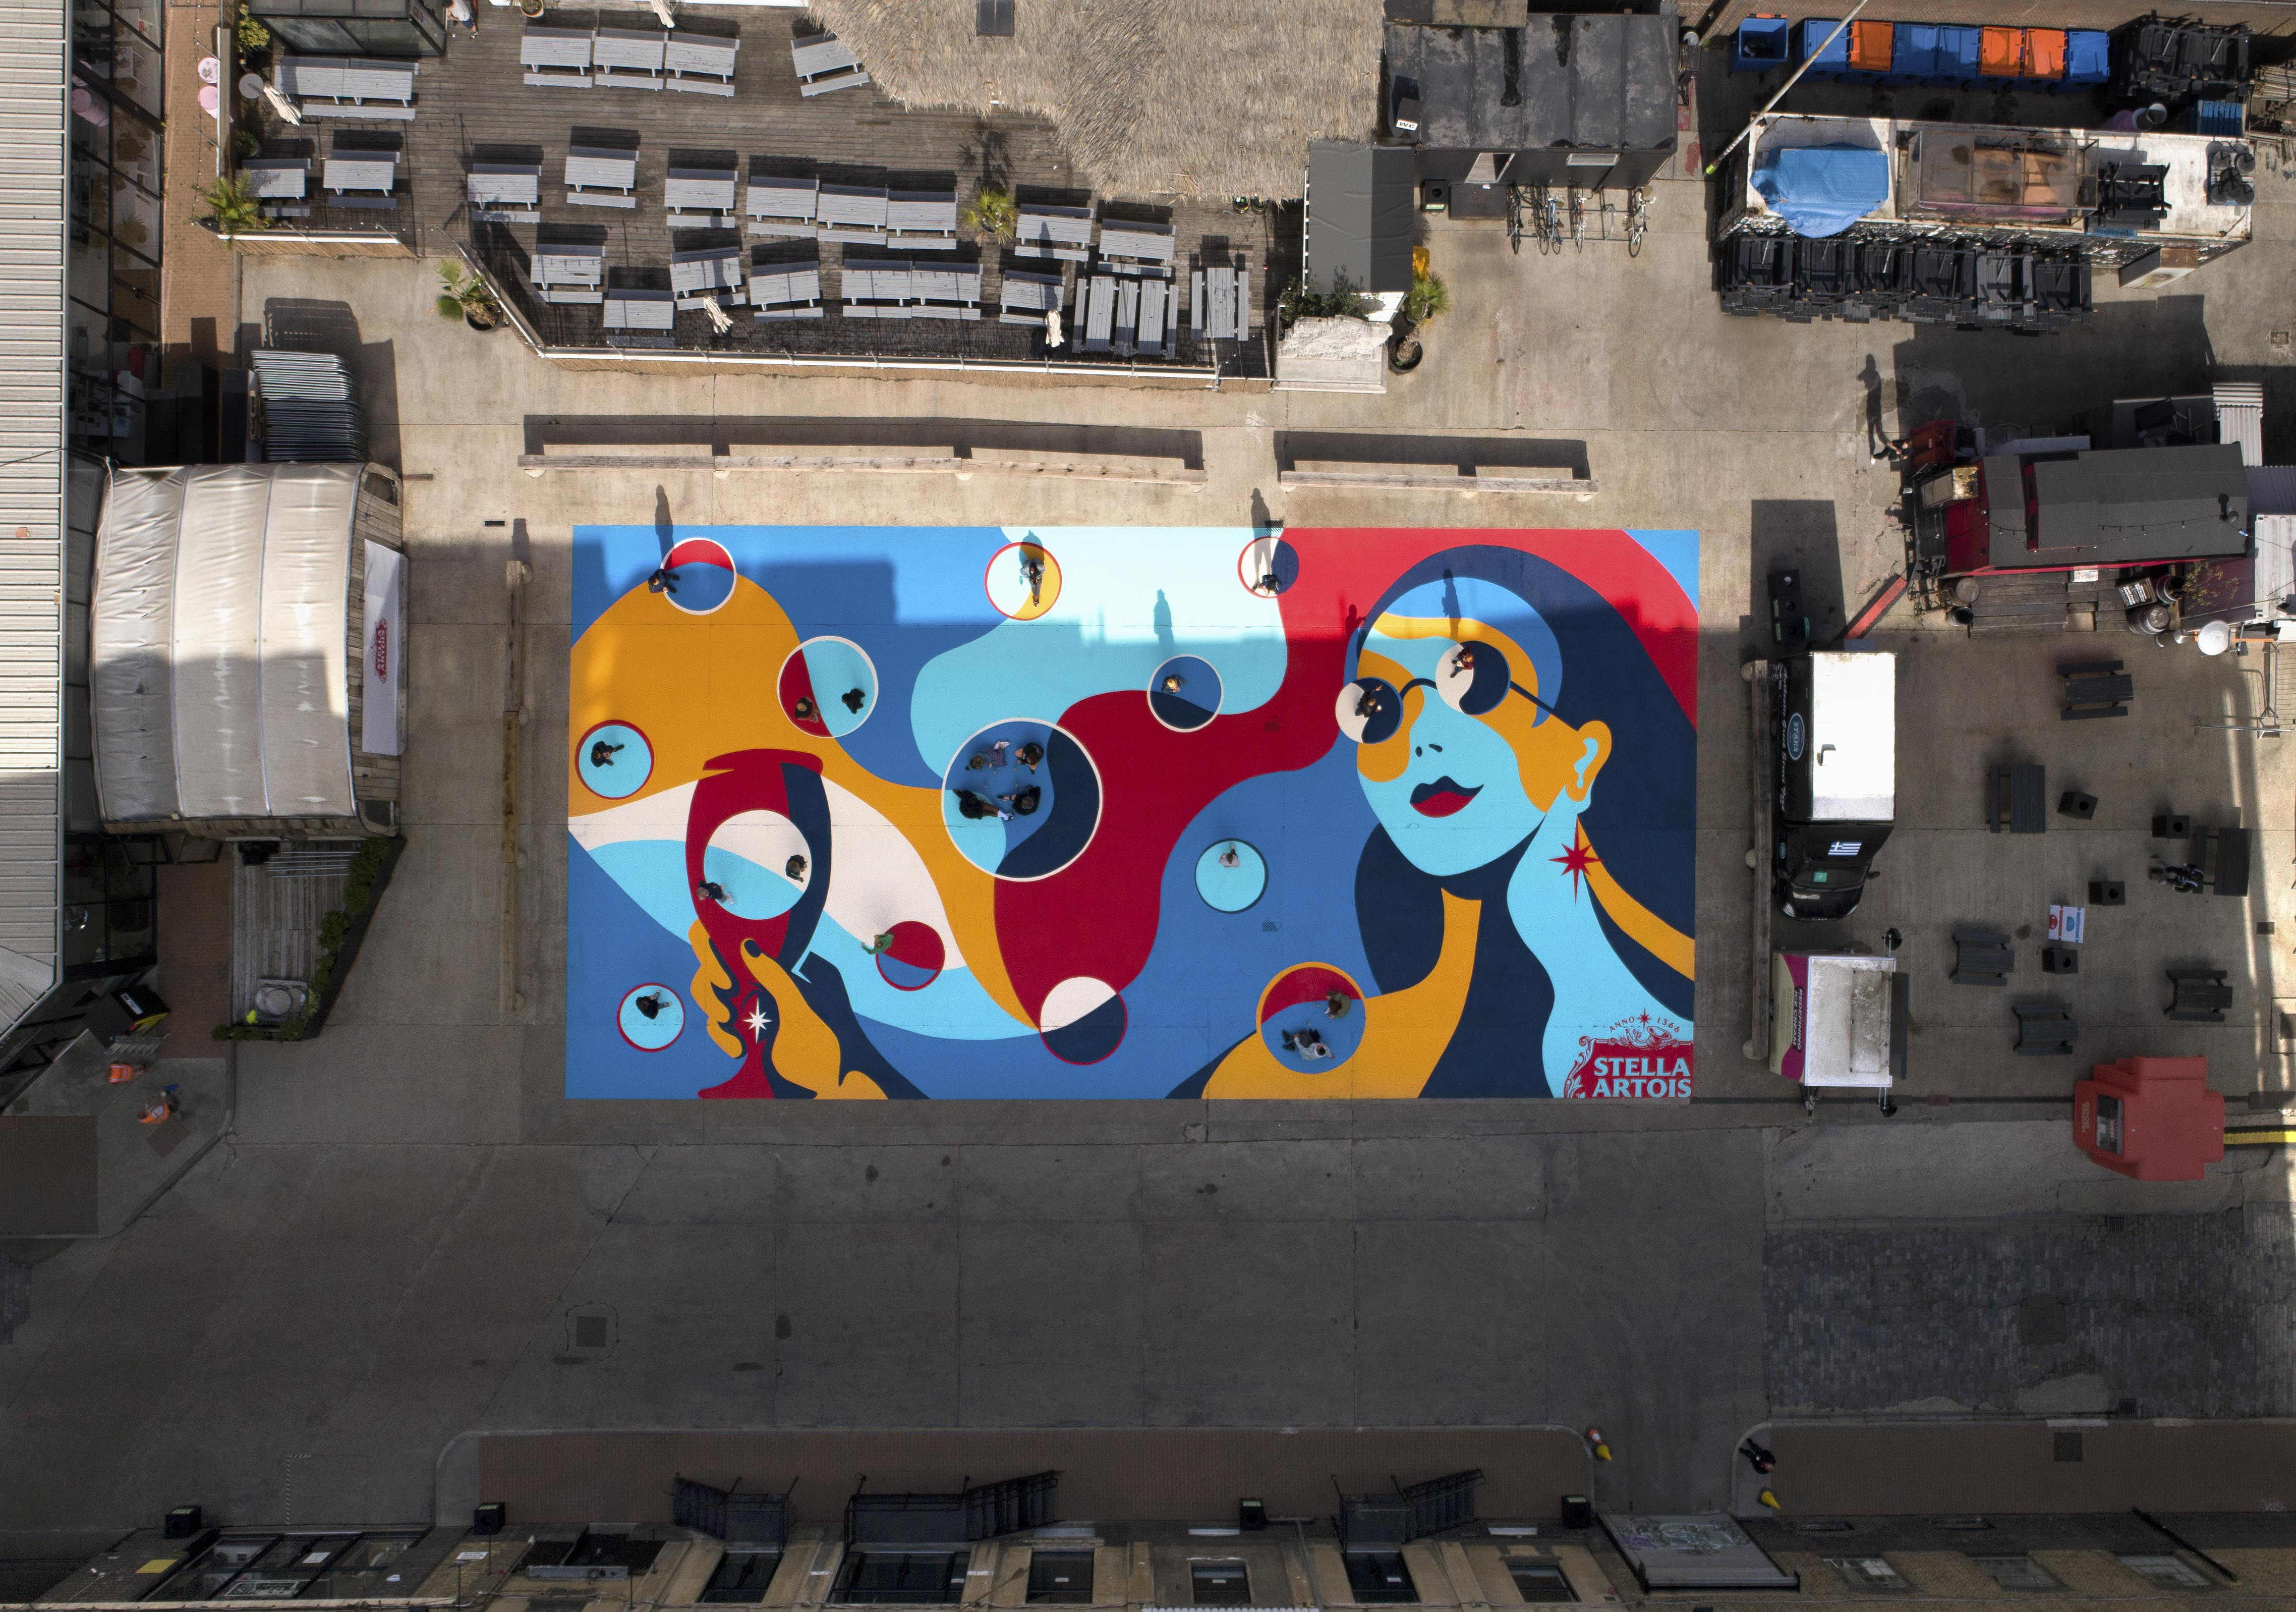 Studio Number One Partners with Stella Artois to Create Social Distancing Mural at Truman Brewery